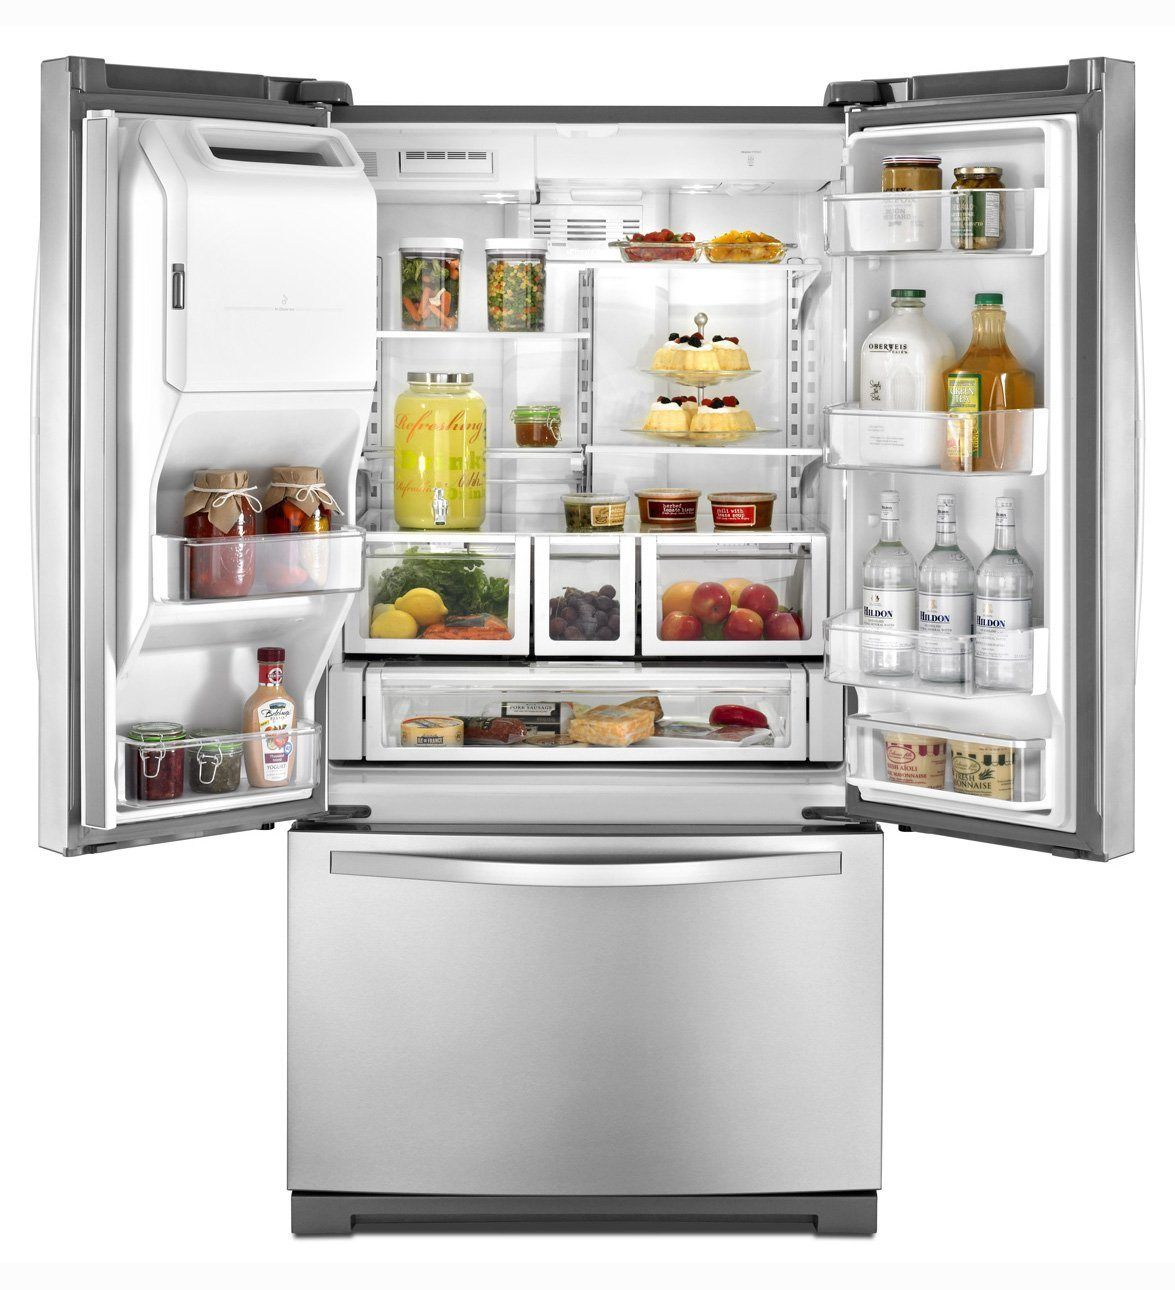 Best 25+ Best Refrigerator Brands Ideas On Pinterest | Barefoot Red Wine,  Best Cranberry Juice And Blackberry Website